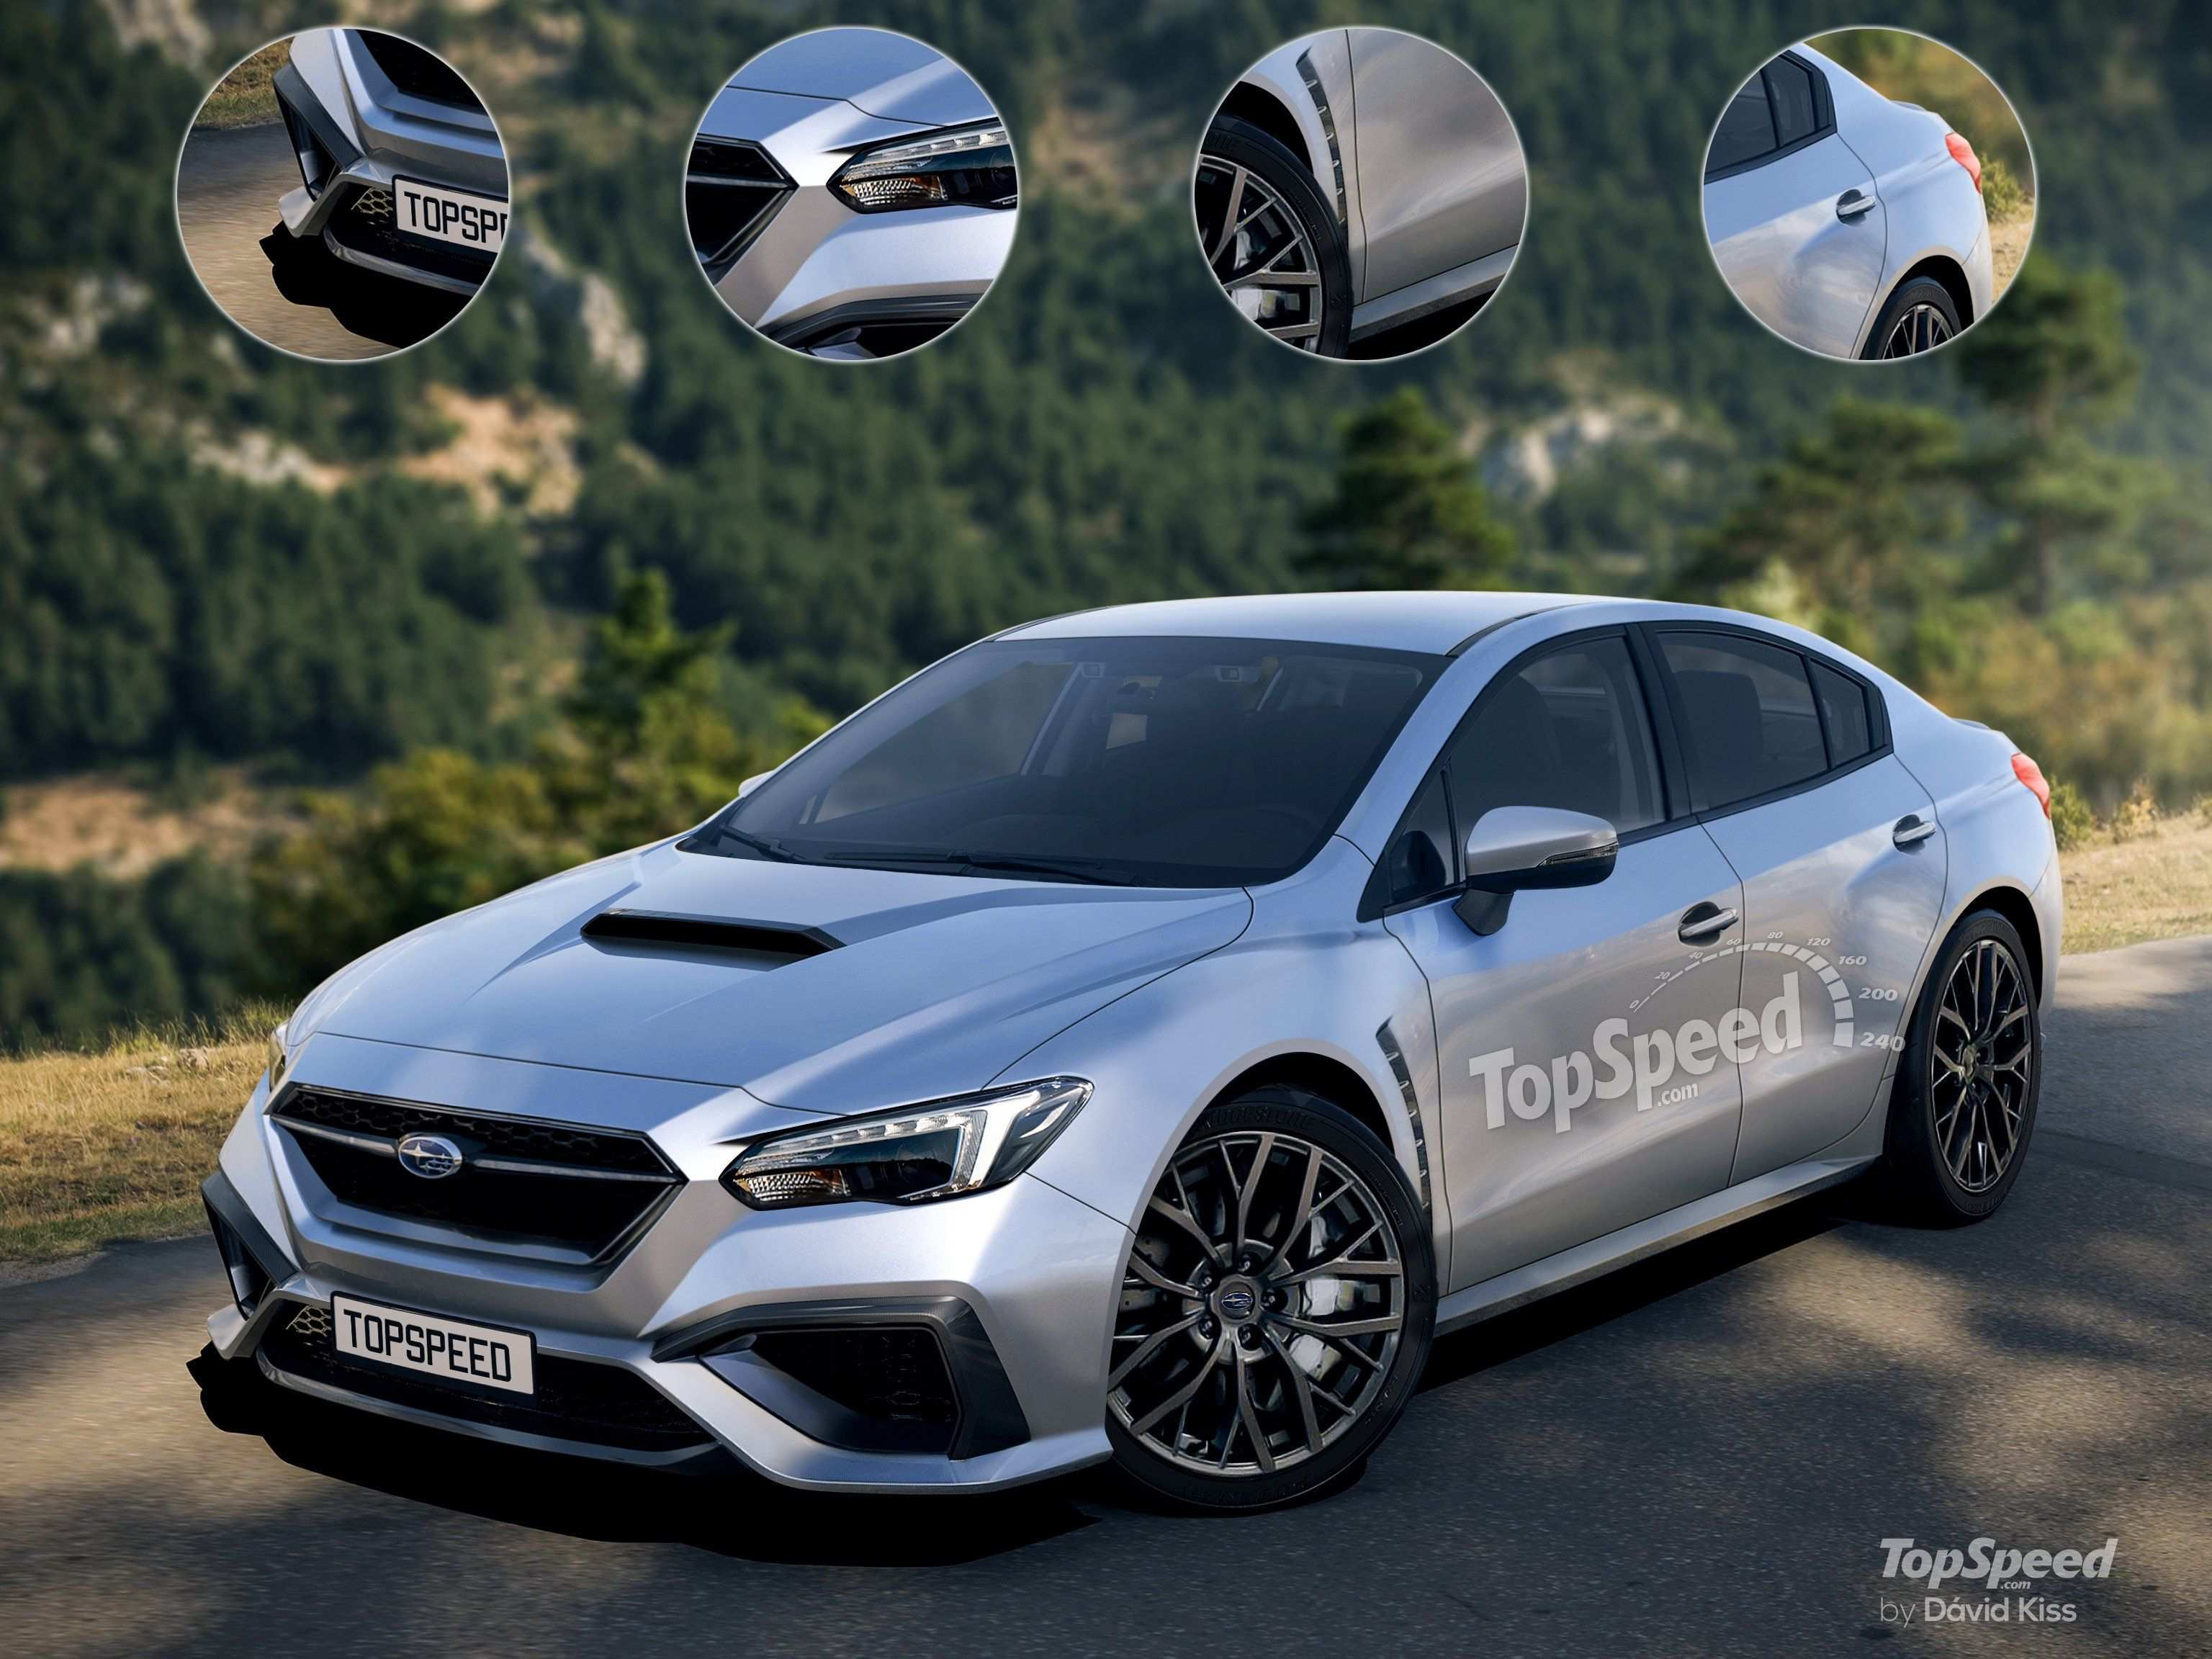 77 Great Subaru 2020 New New Concept Ratings with Subaru 2020 New New Concept